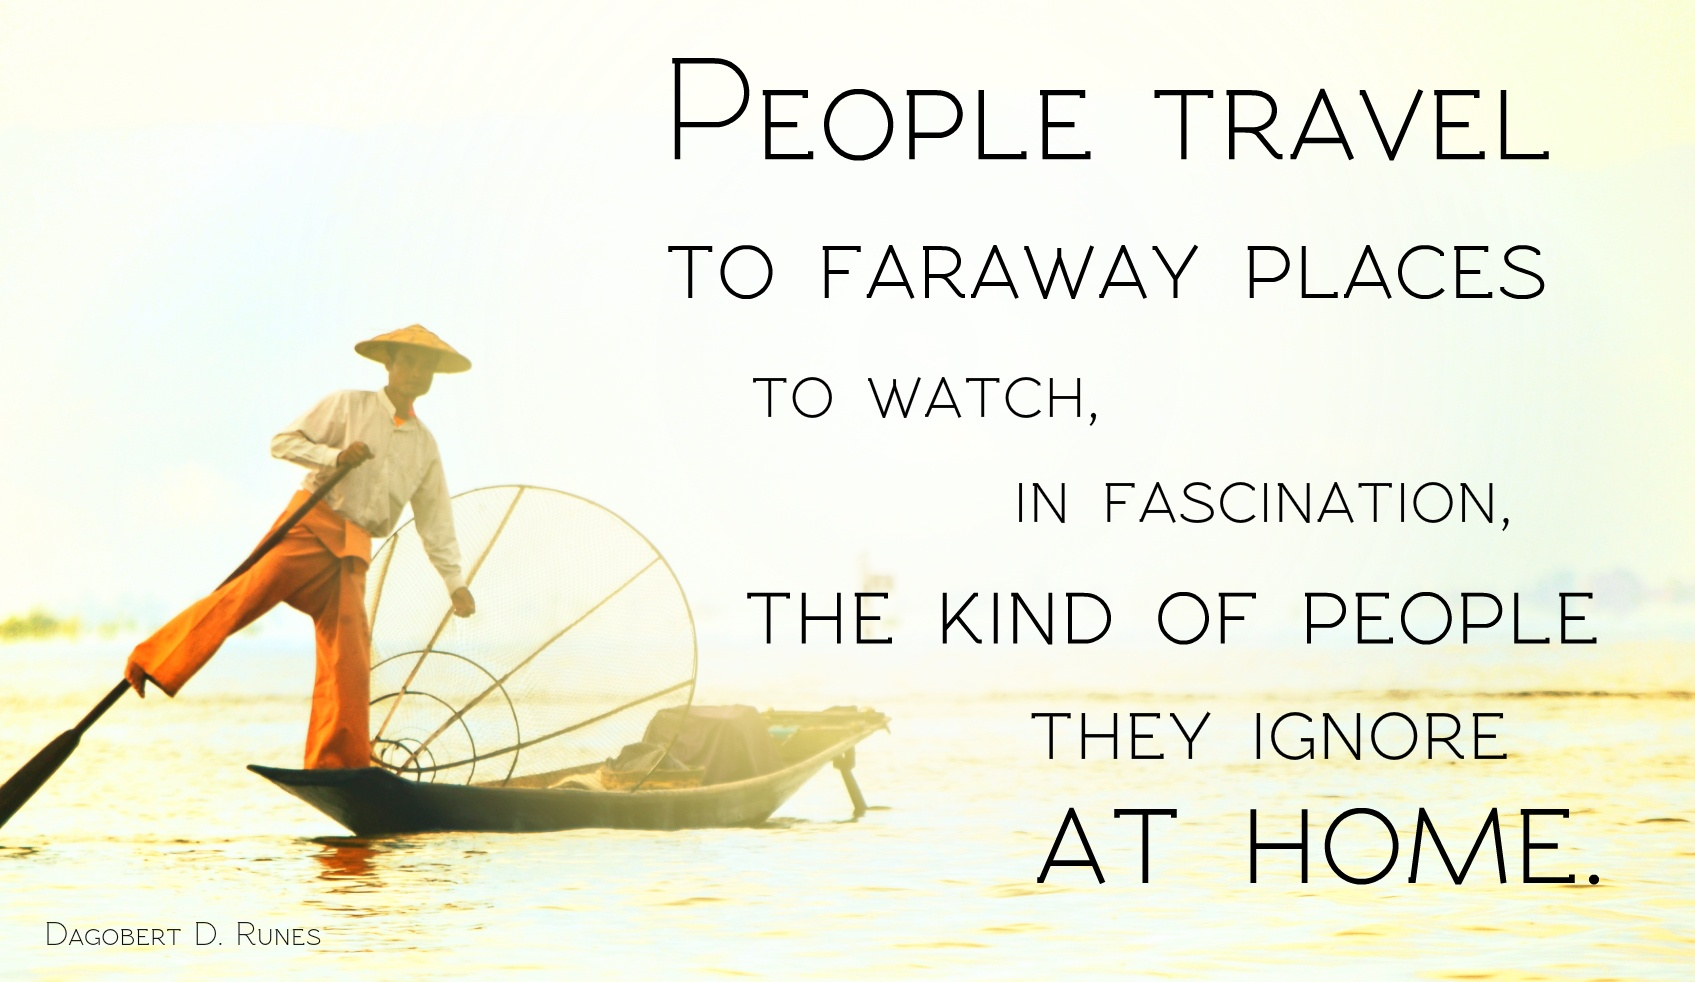 People travel to faraway places to watch, in fascination, the kind of people they ignore at home.